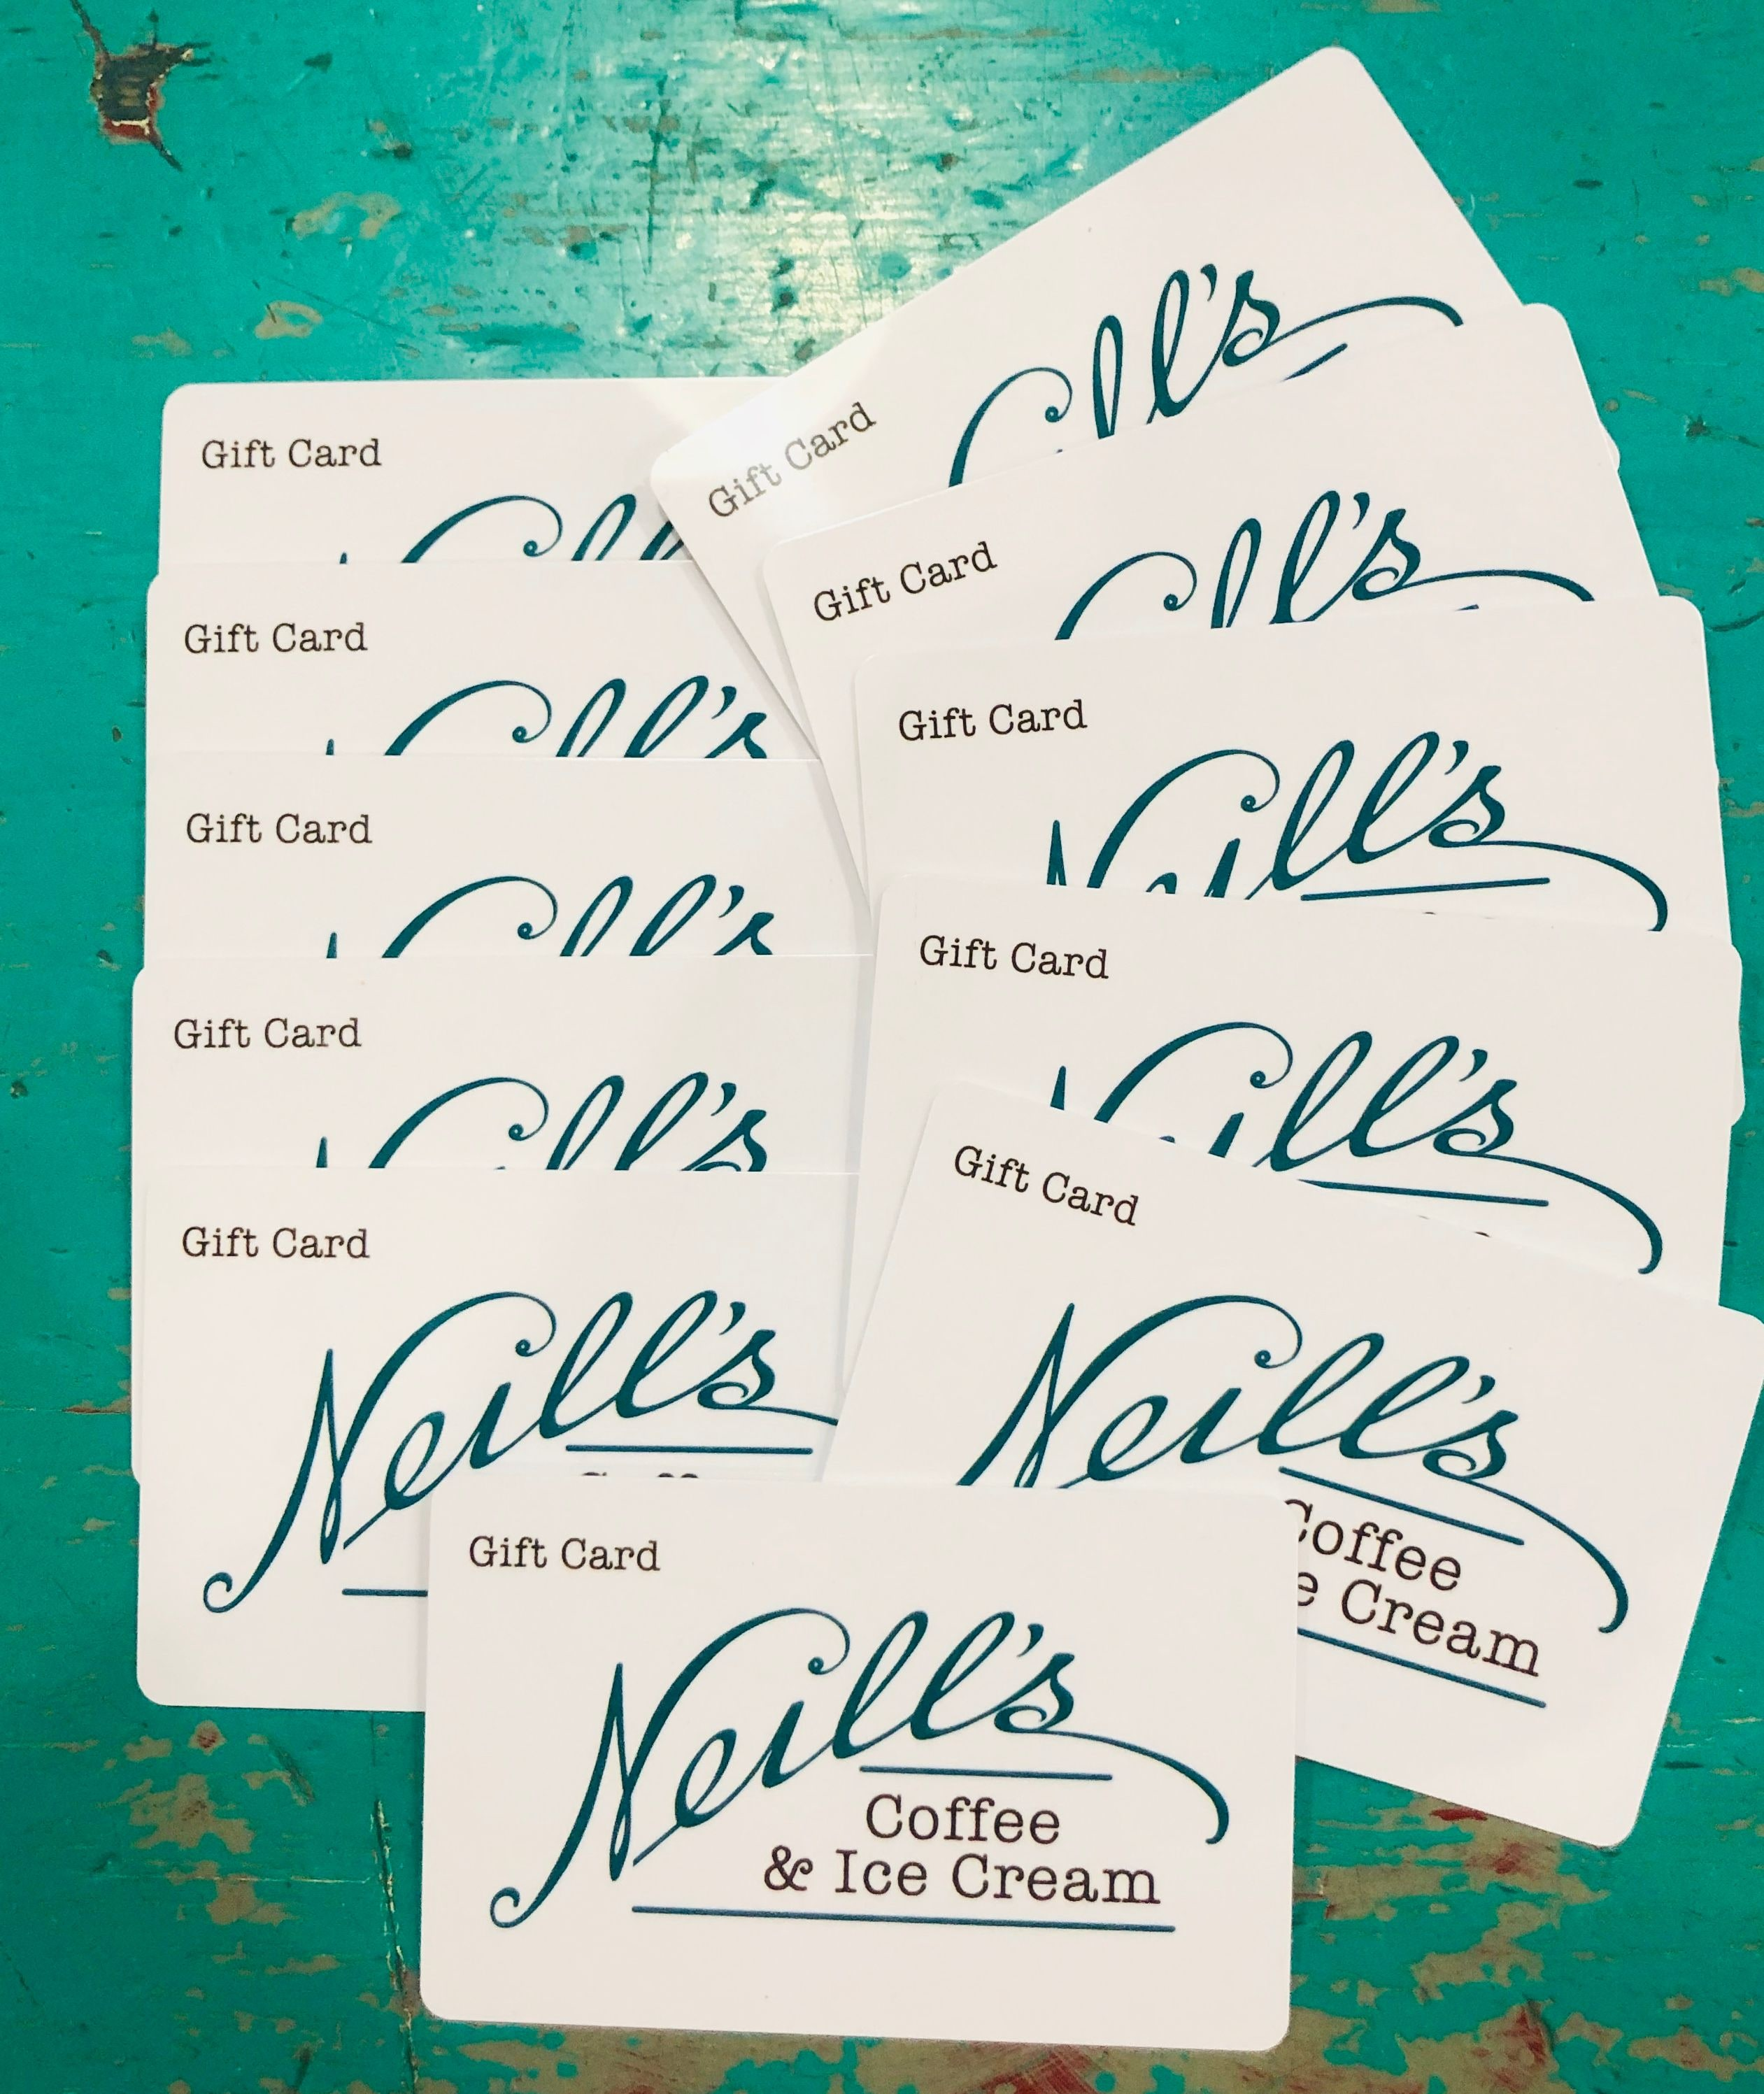 Neill's Coffee & Ice Cream Gift Card